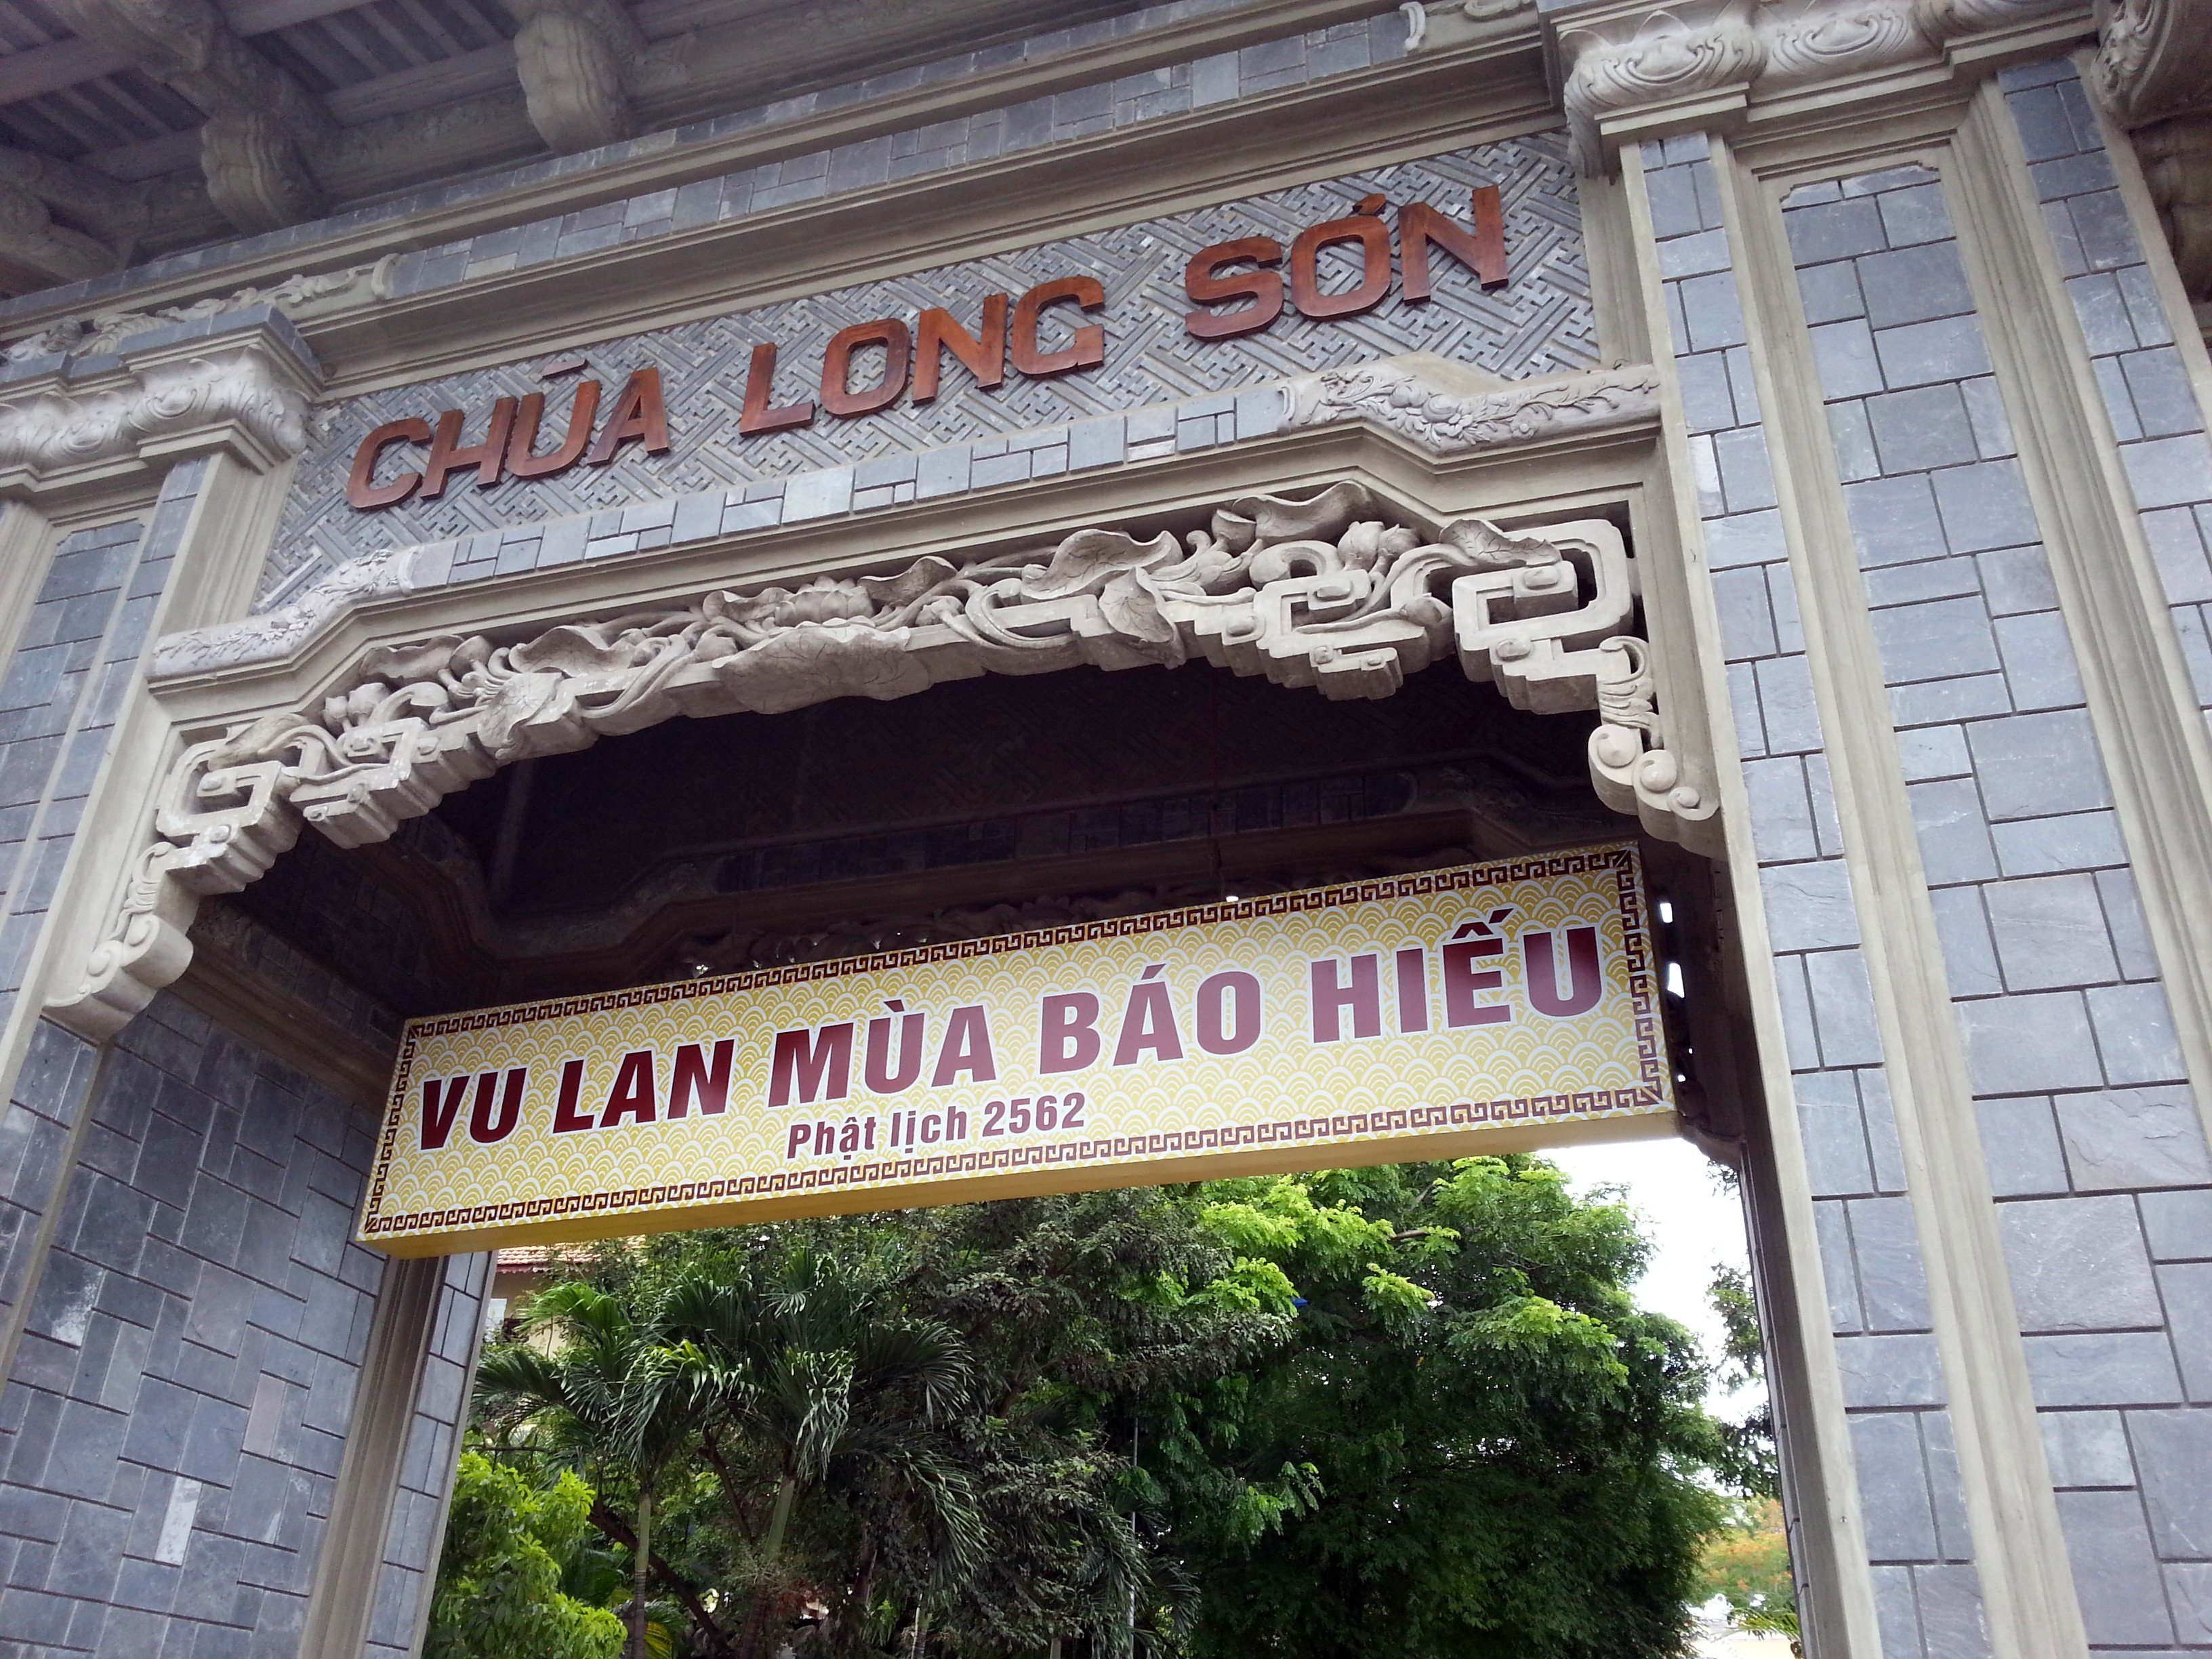 Entrance to Long Son Pagoda